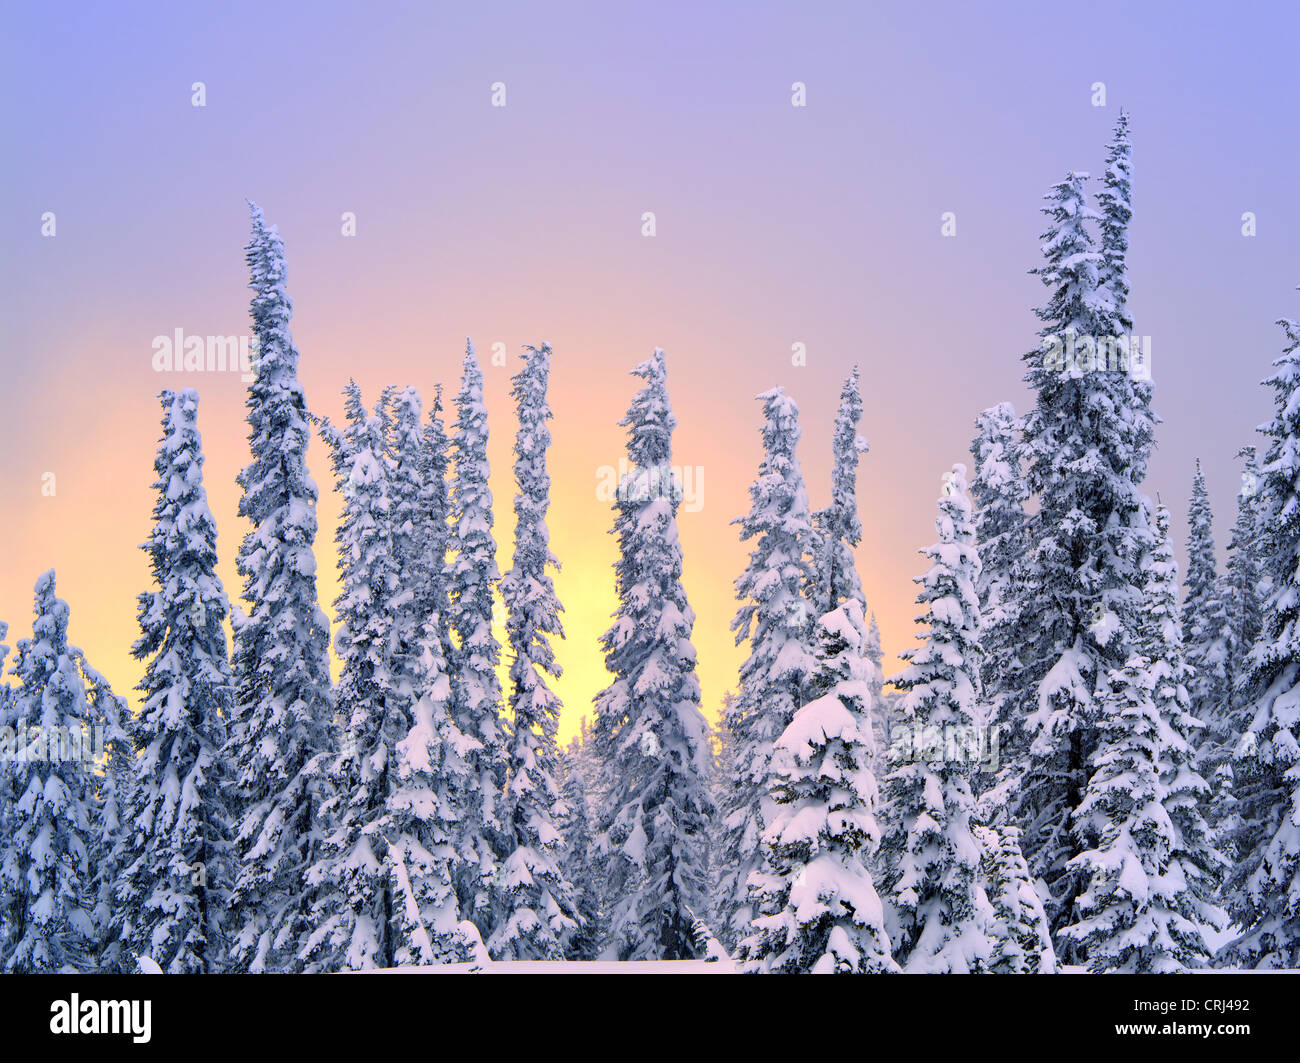 Snow on trees with sunset color. Mt. Rainier National Park, Washington - Stock Image